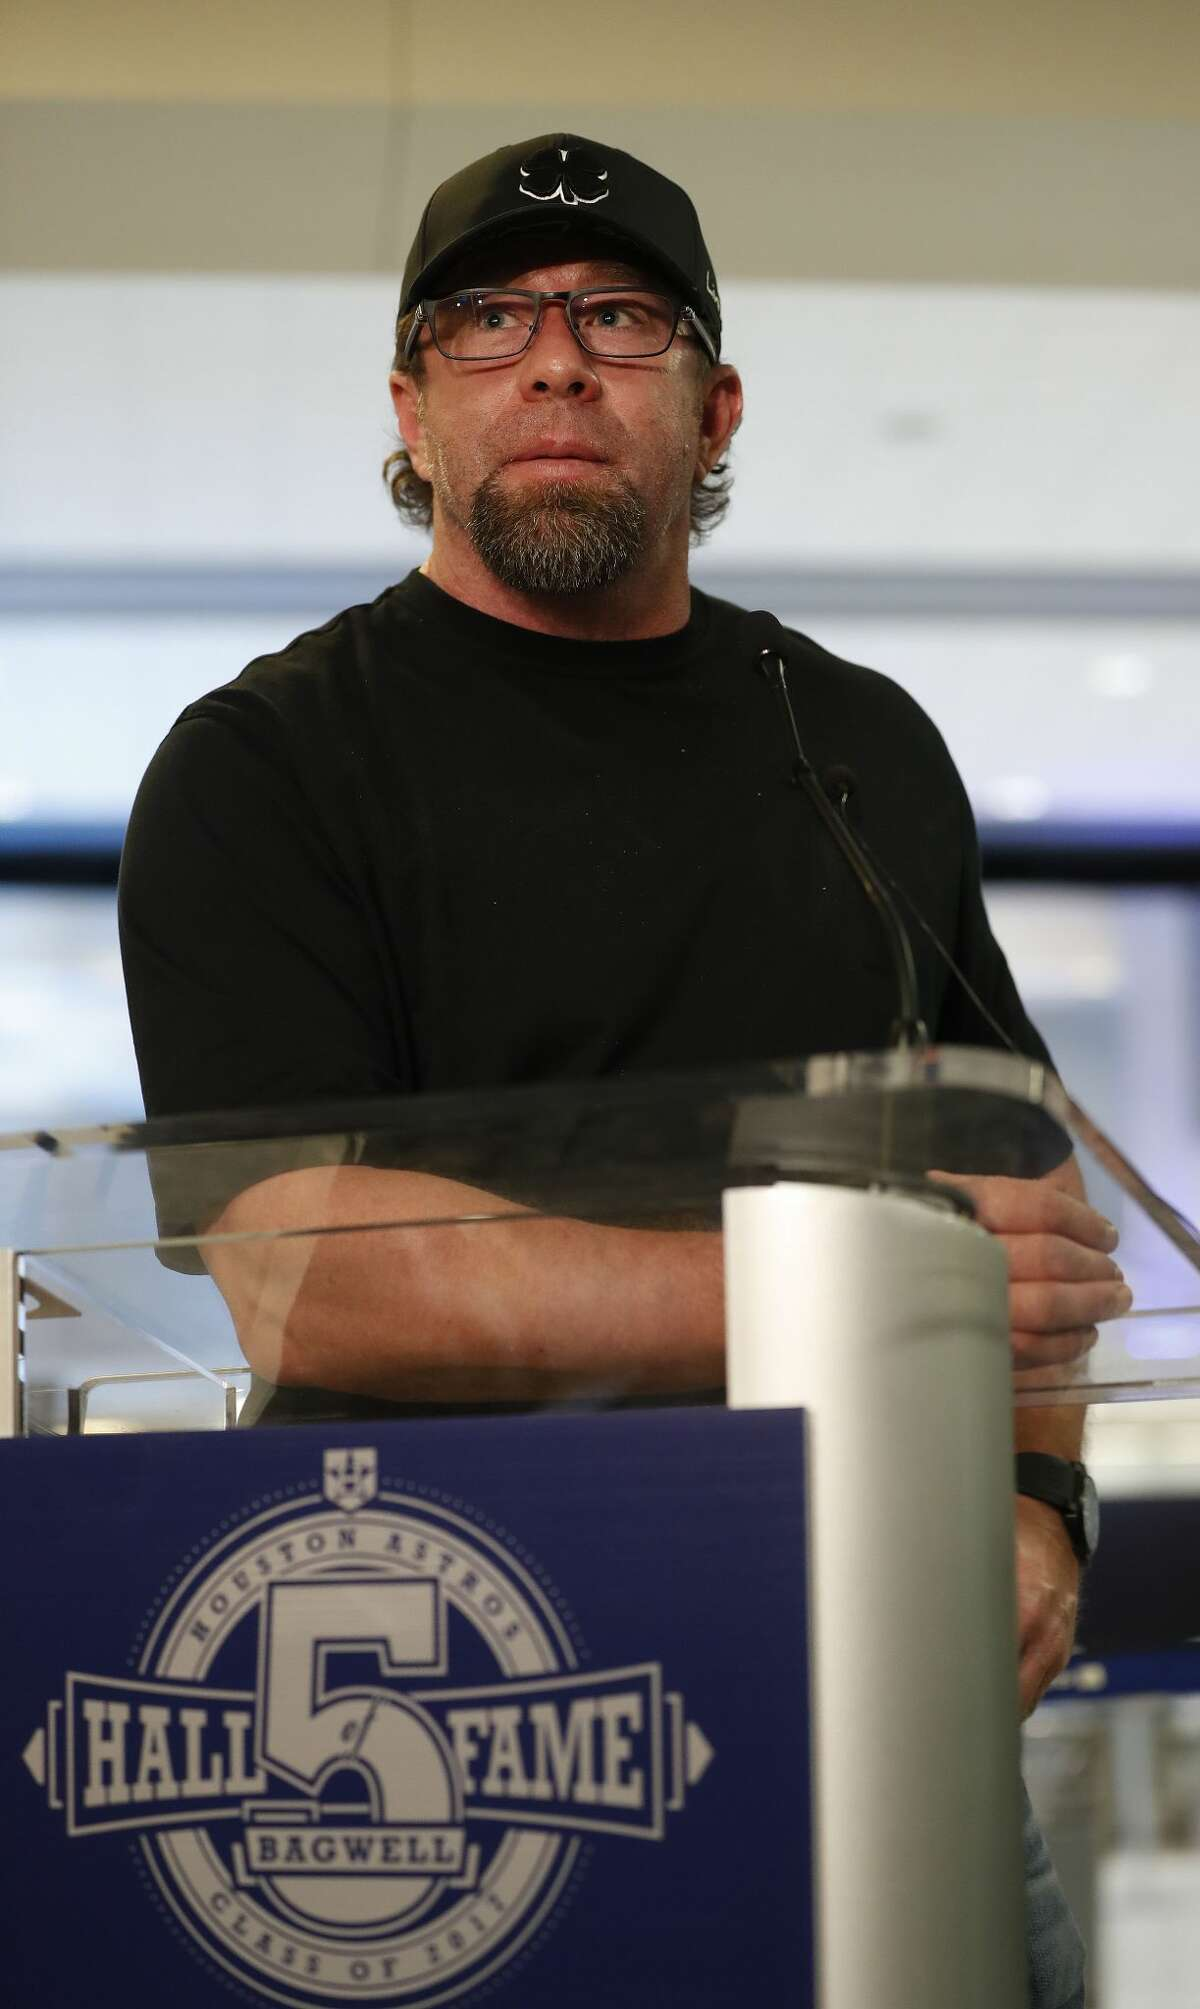 Former Houston Astros first baseman Jeff Bagwell, speaks to the media at Bush IAH, Wednesday January 18, 2017, after it was announced that he would be entering the 2017 Baseball Hall of Fame. ( Karen Warren / Houston Chronicle )